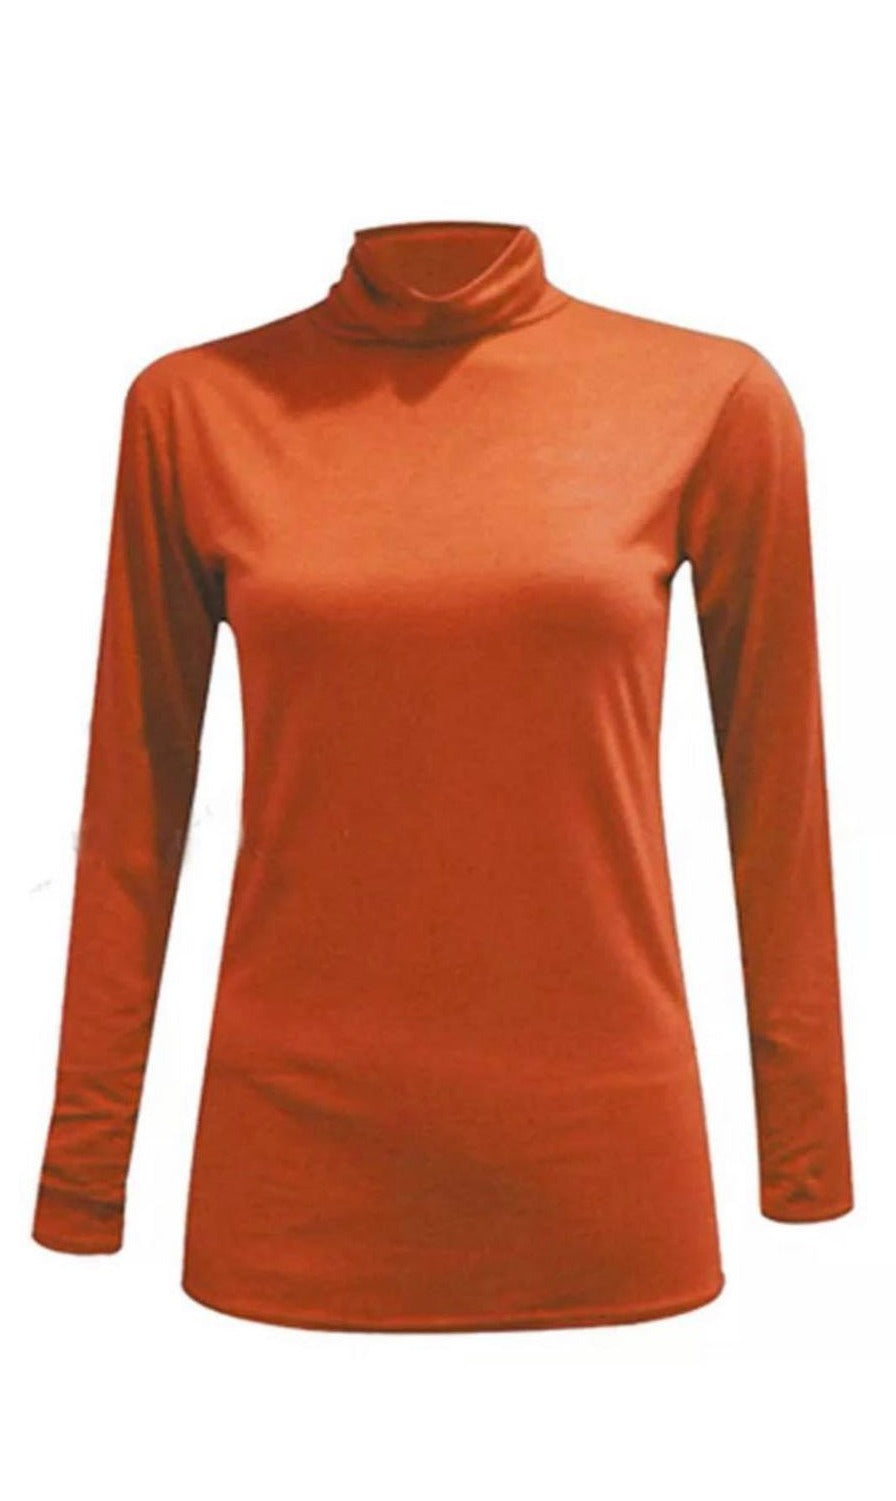 Rust Long Sleeved Jersey Turtle Neck Top